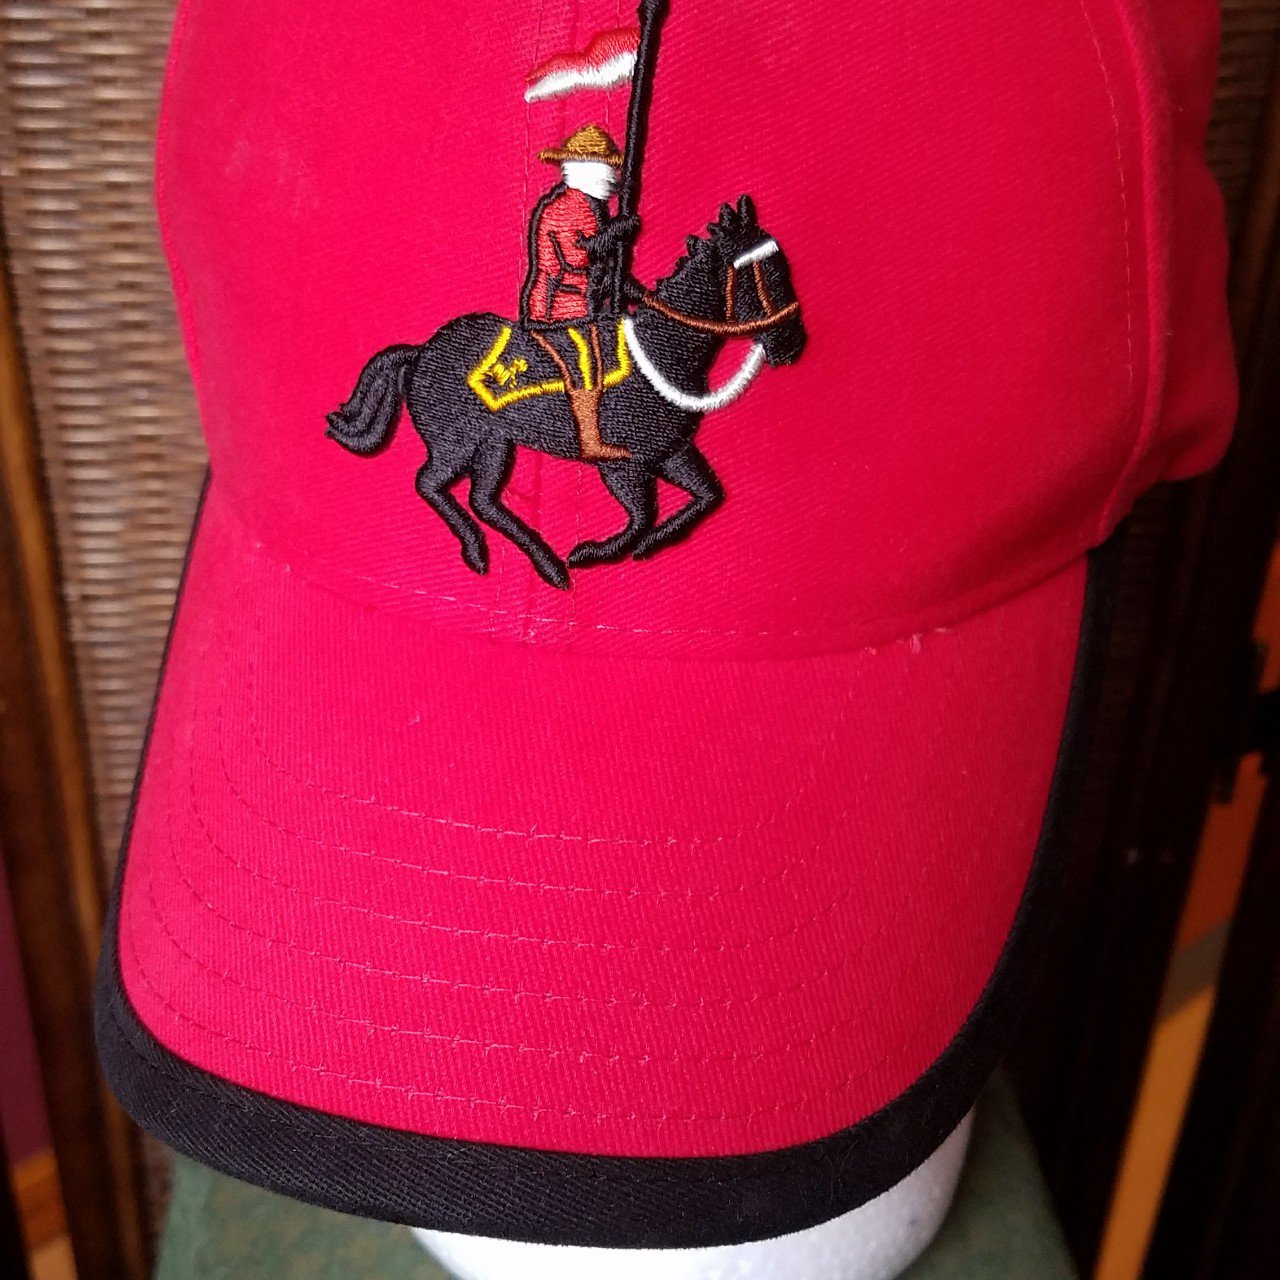 Oh Canada! Ball Cap Check out this super sick cap with in a - Depop 2907006aa39c